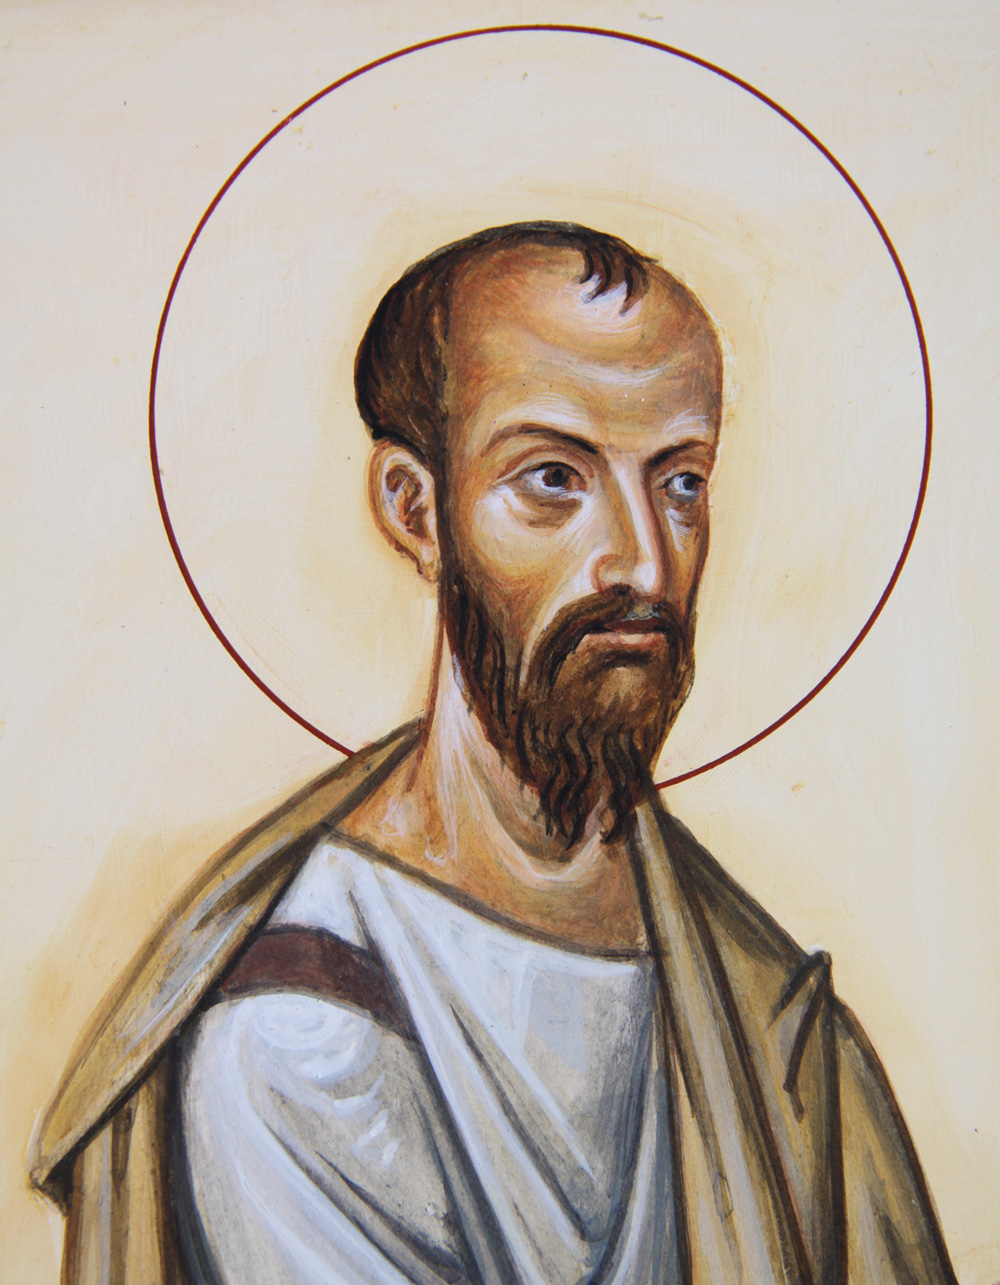 essays on apostle paul The apostle paul - the apostle paul the apostle paul was born around the year of 3 ad in the jewish community of tarsus when he was born, his strict pharisee parents dedicated him to the service of god and did all they could to bring him up as good jew.